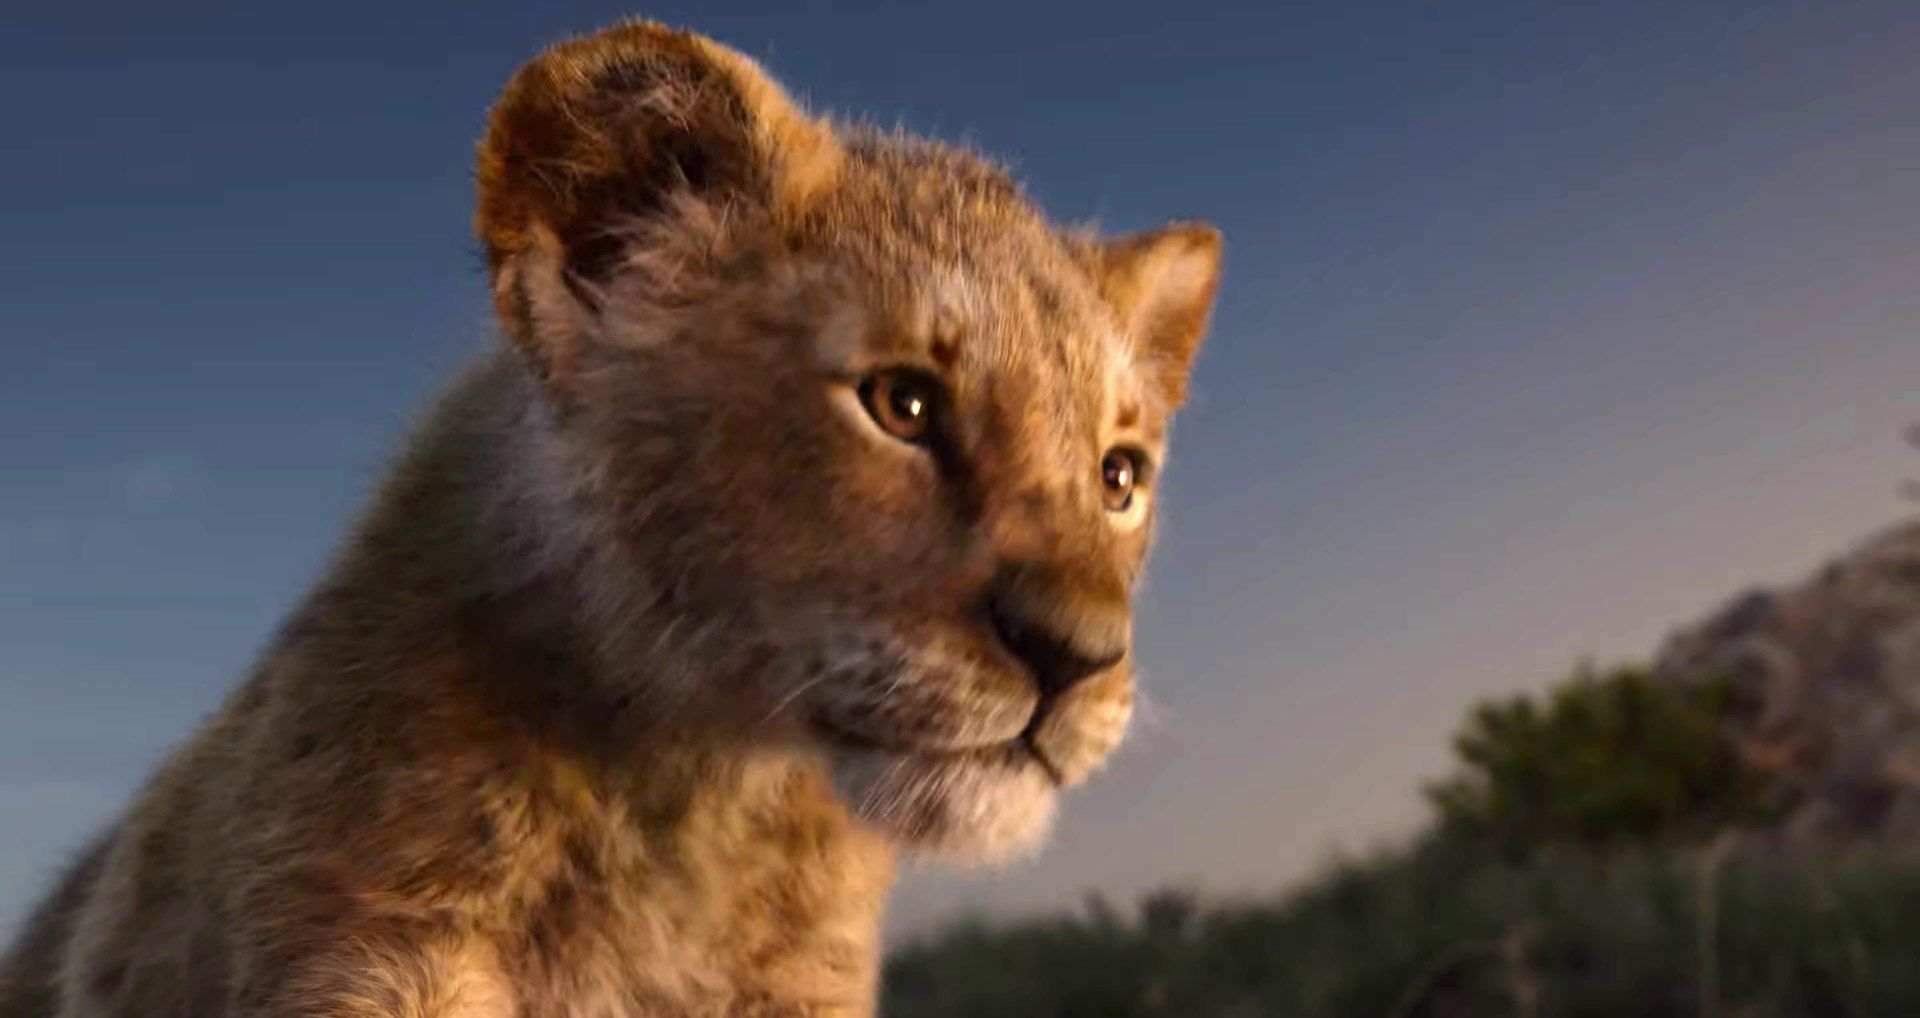 The Lion King Soundtrack Confirms The Classic Songs Coming Back For Remake